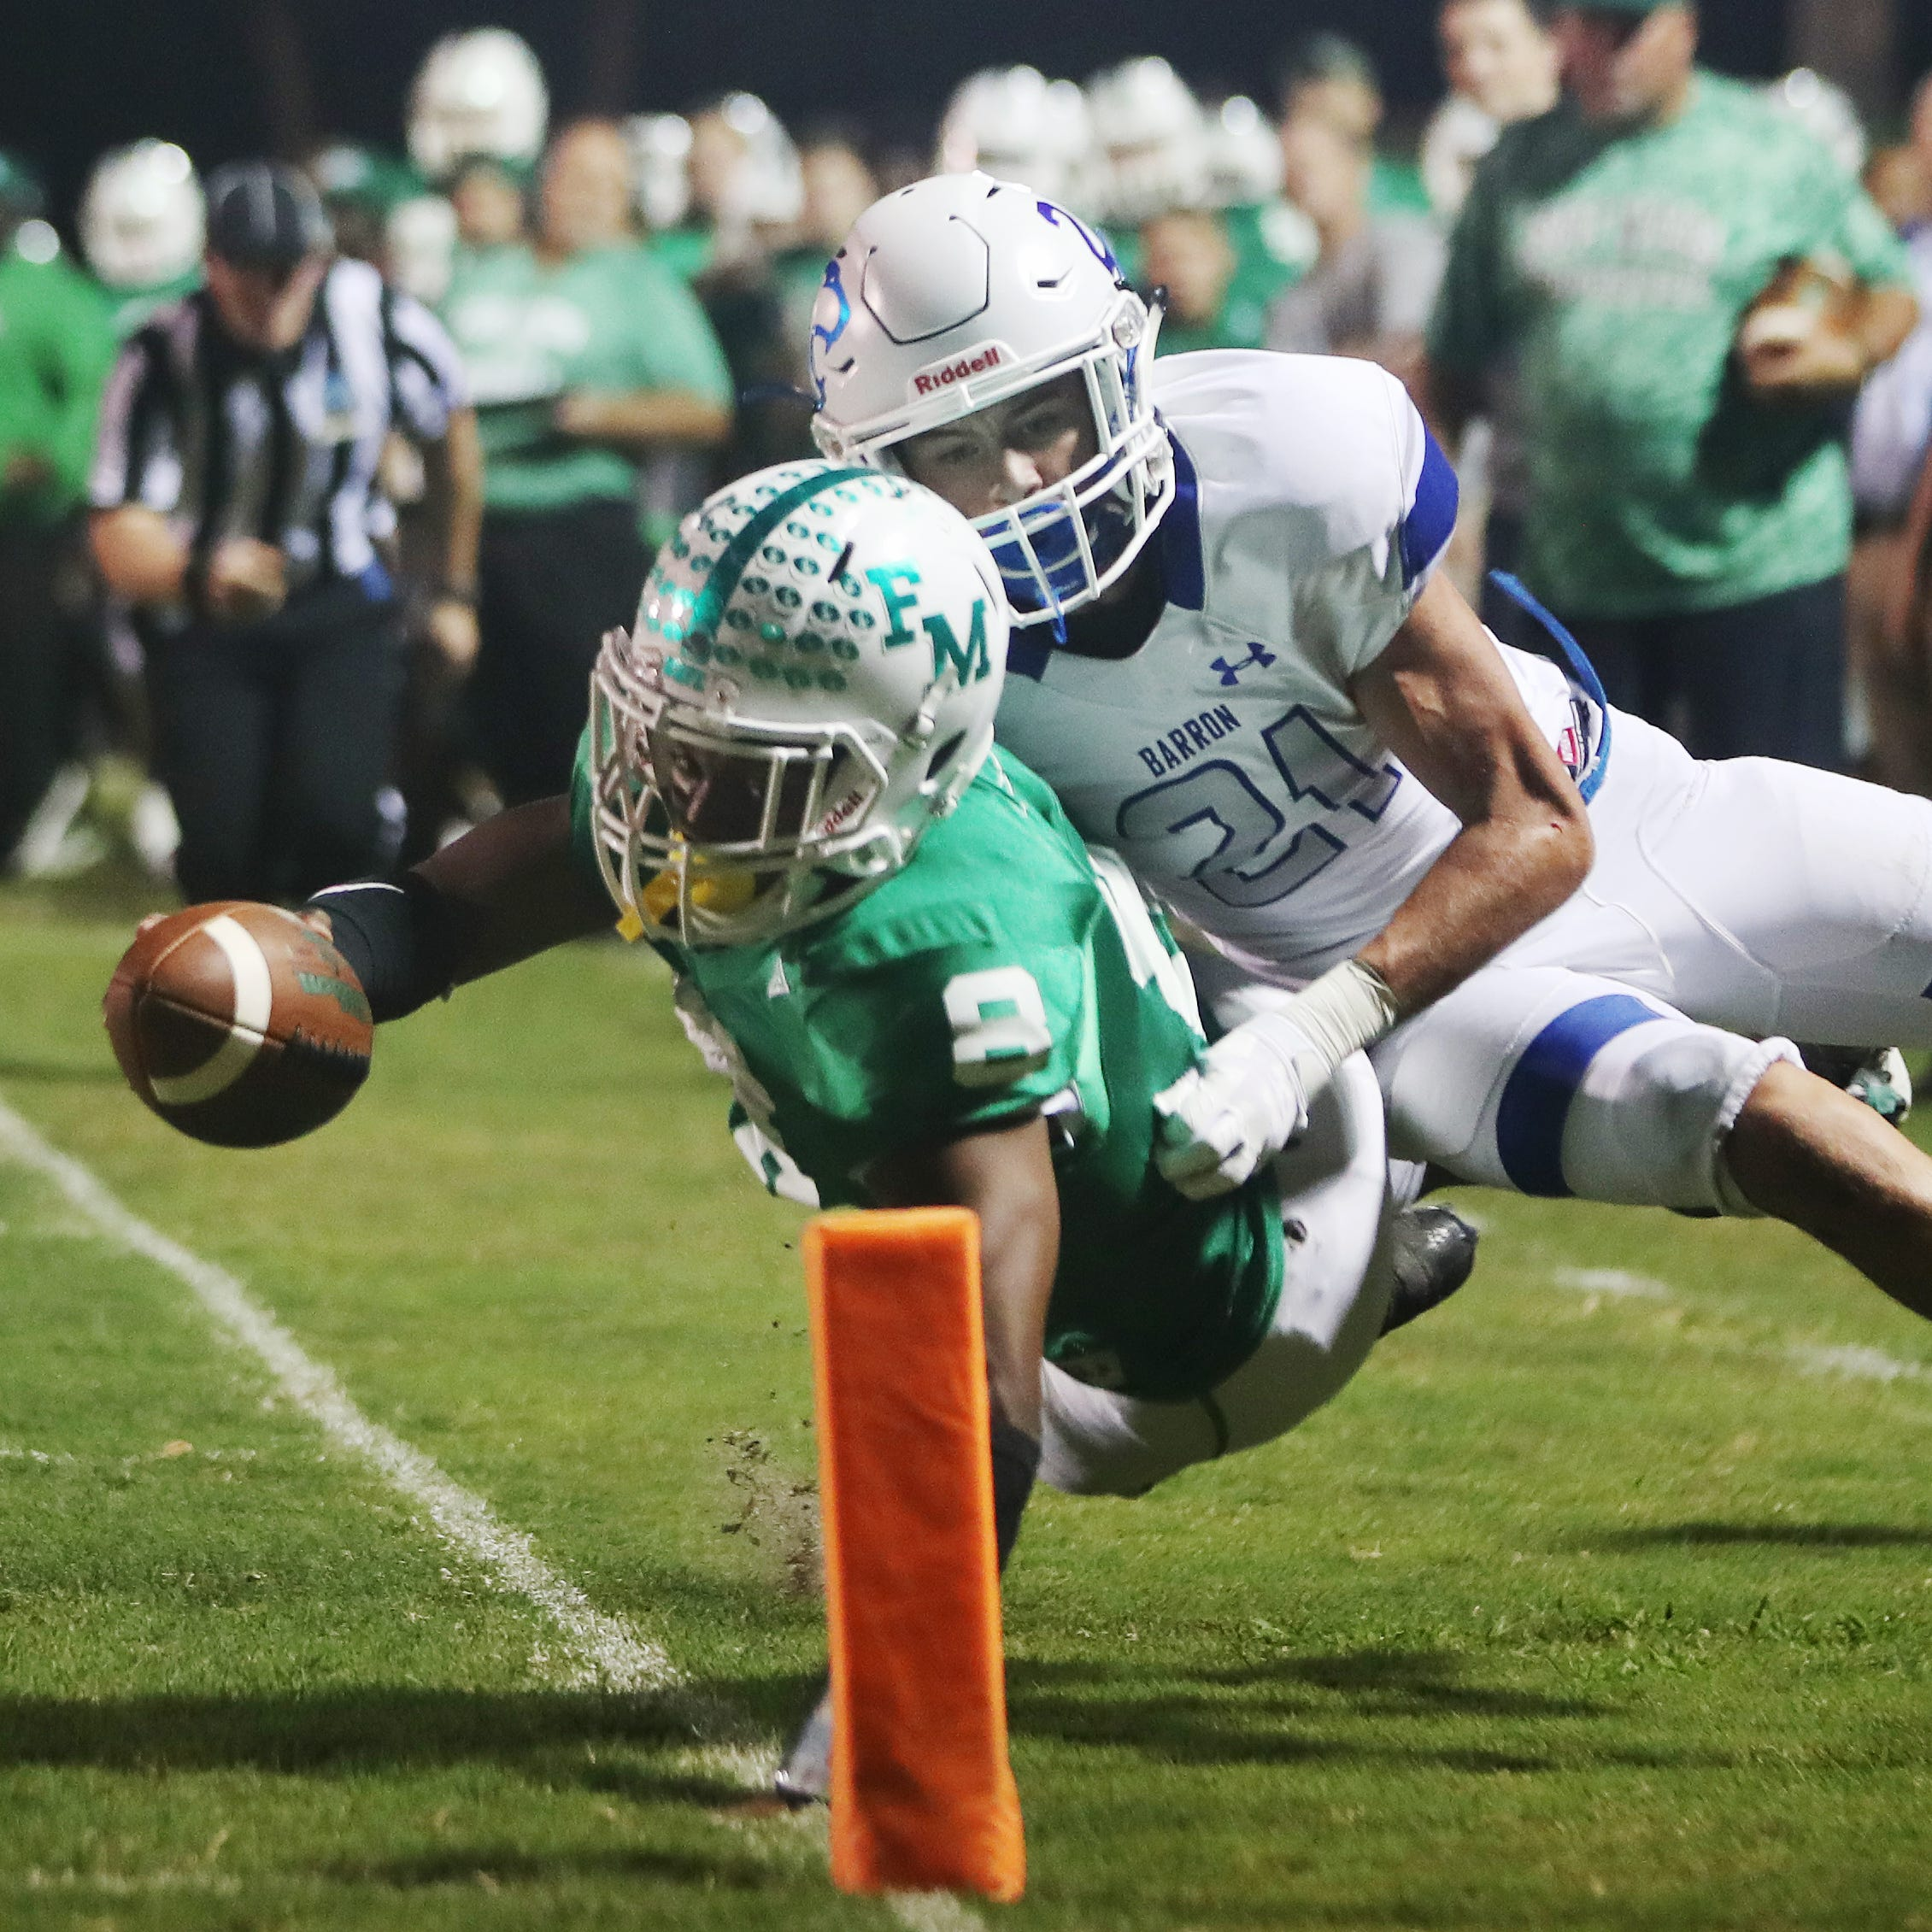 Fort Myers offense explodes in regional quarterfinal win over Barron Collier